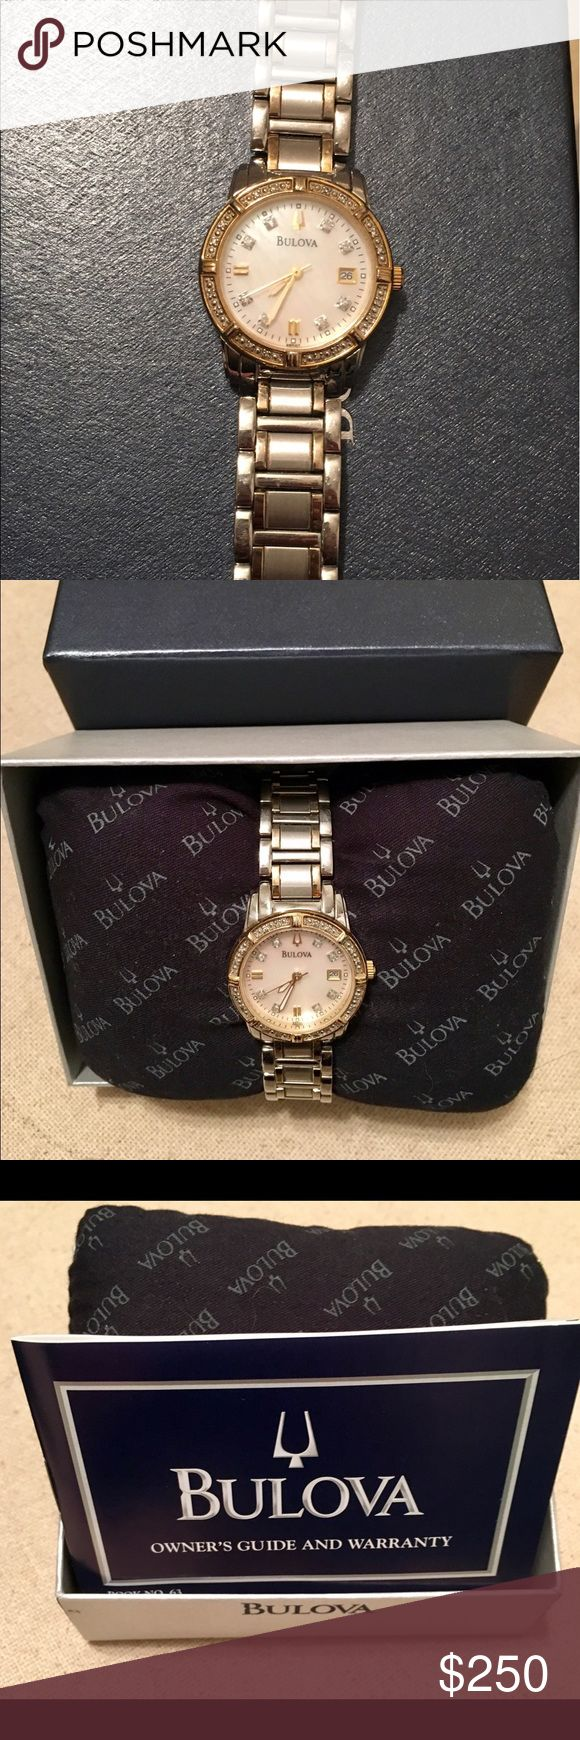 Two-Tone Women's Bulova Watch Beautiful two-tone women's Bulova watch with an iridescent pearl face and delicate diamond details. Comes with original box, information packet, and additional links. Bulova Accessories Watches